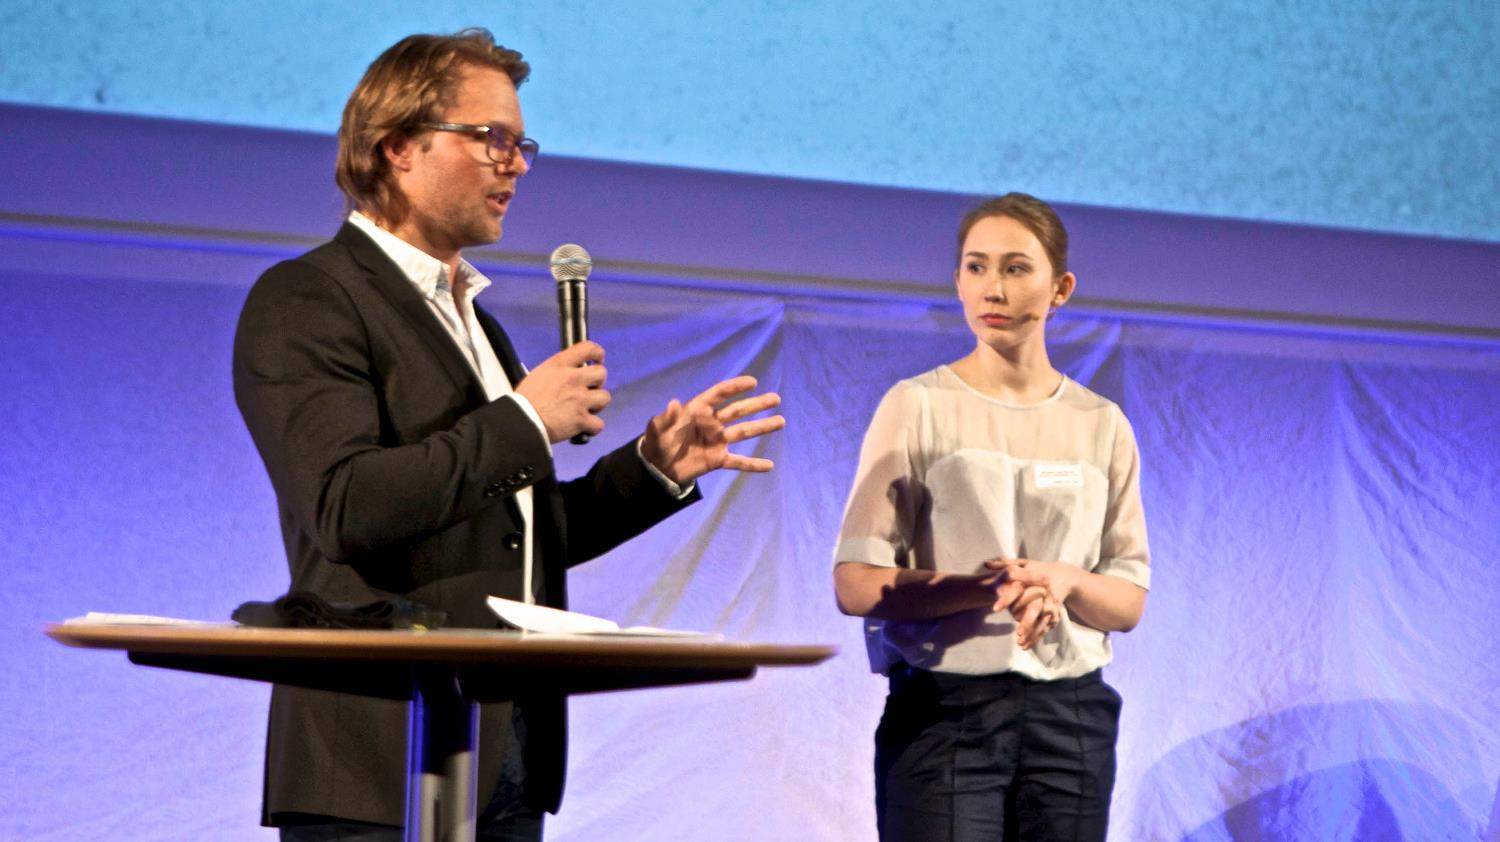 Birgitte and Mats presenting their idea at Venture Cup.